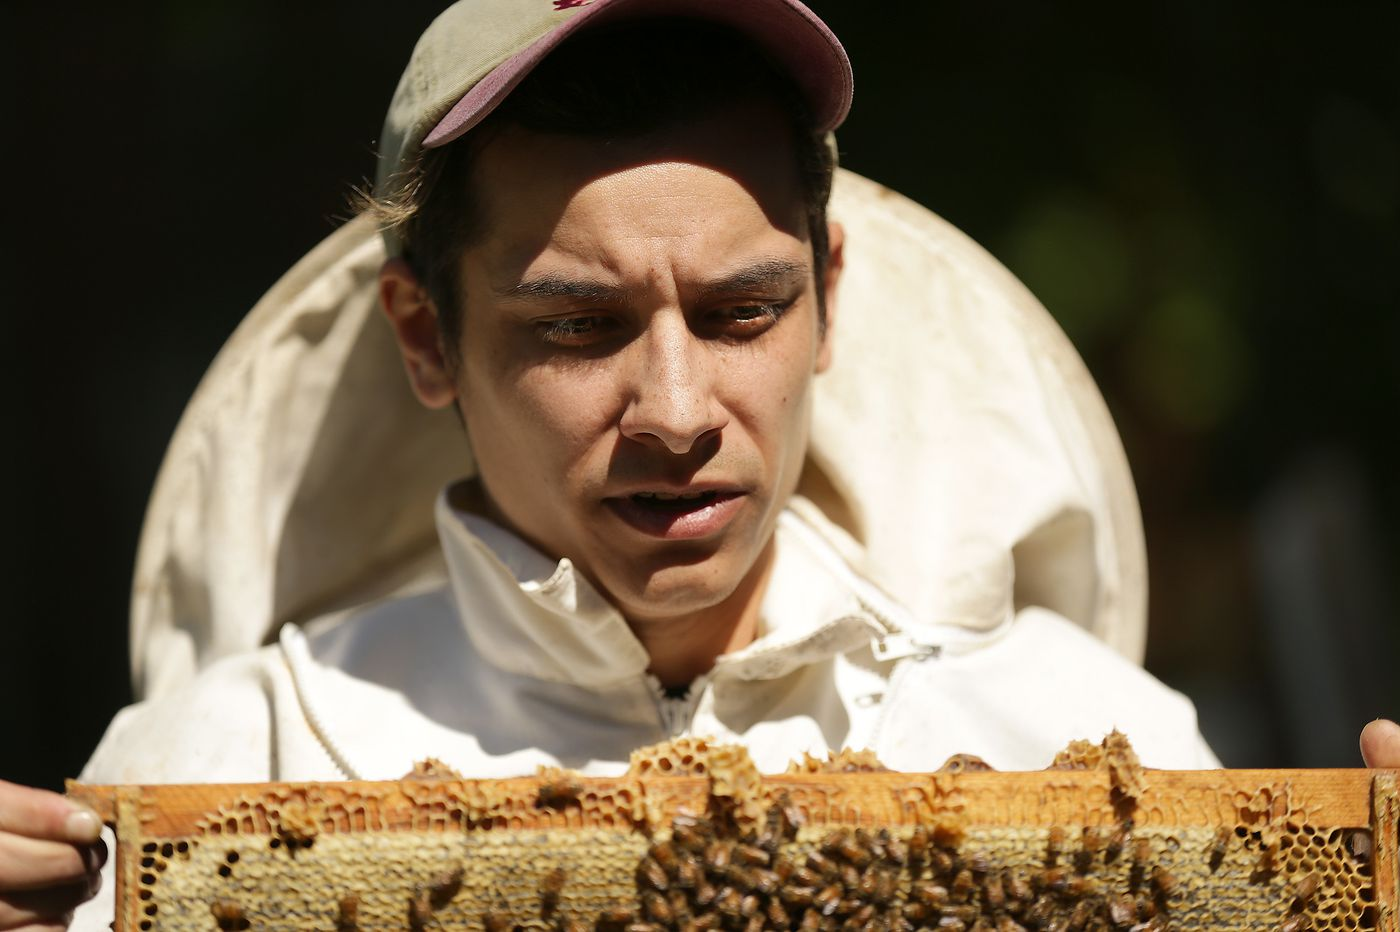 Philly millennials are buzzing about beekeeping